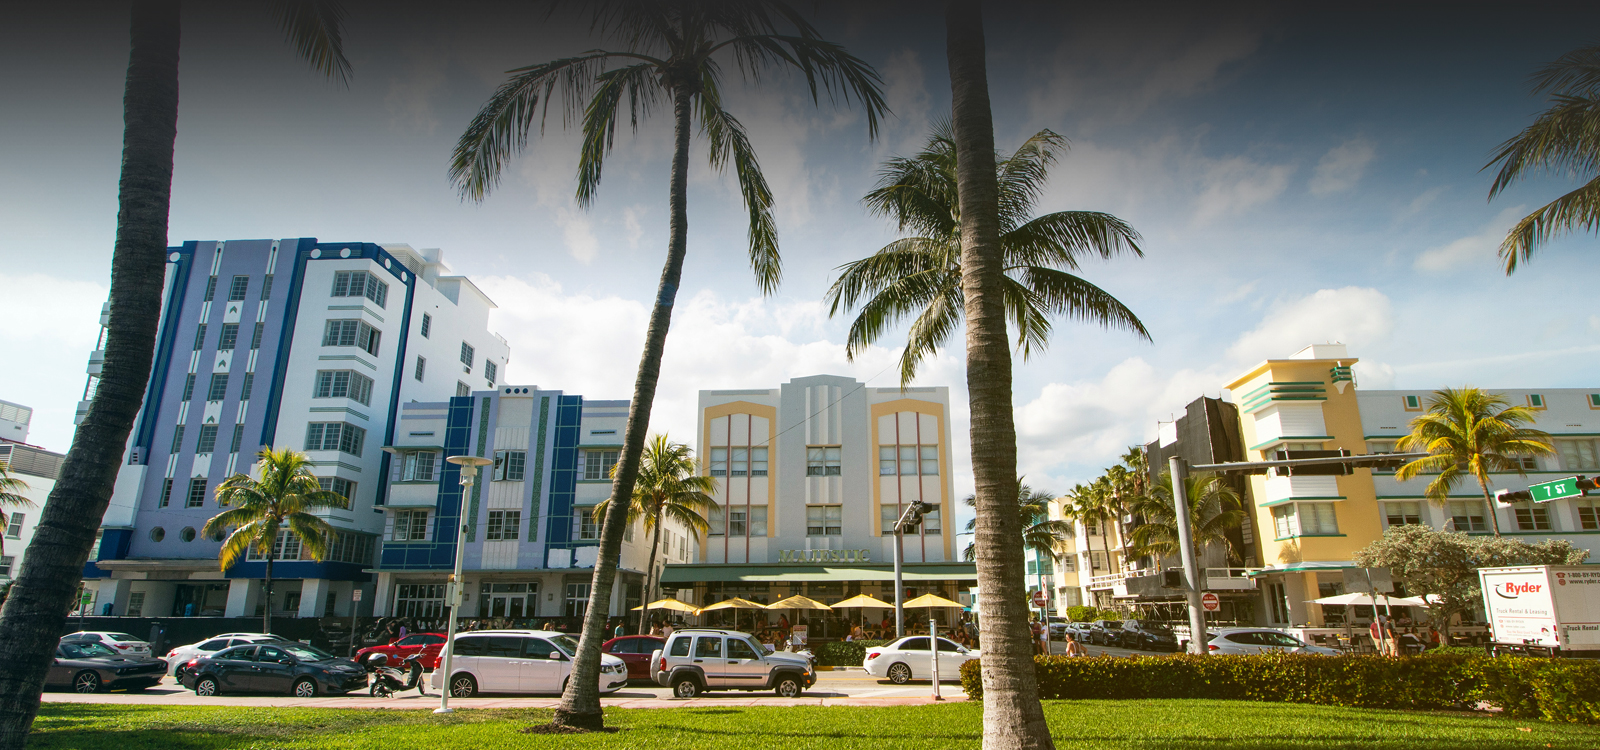 OUR LOCATION MAKES US THE IDEAL SOUTH BEACH HOTEL